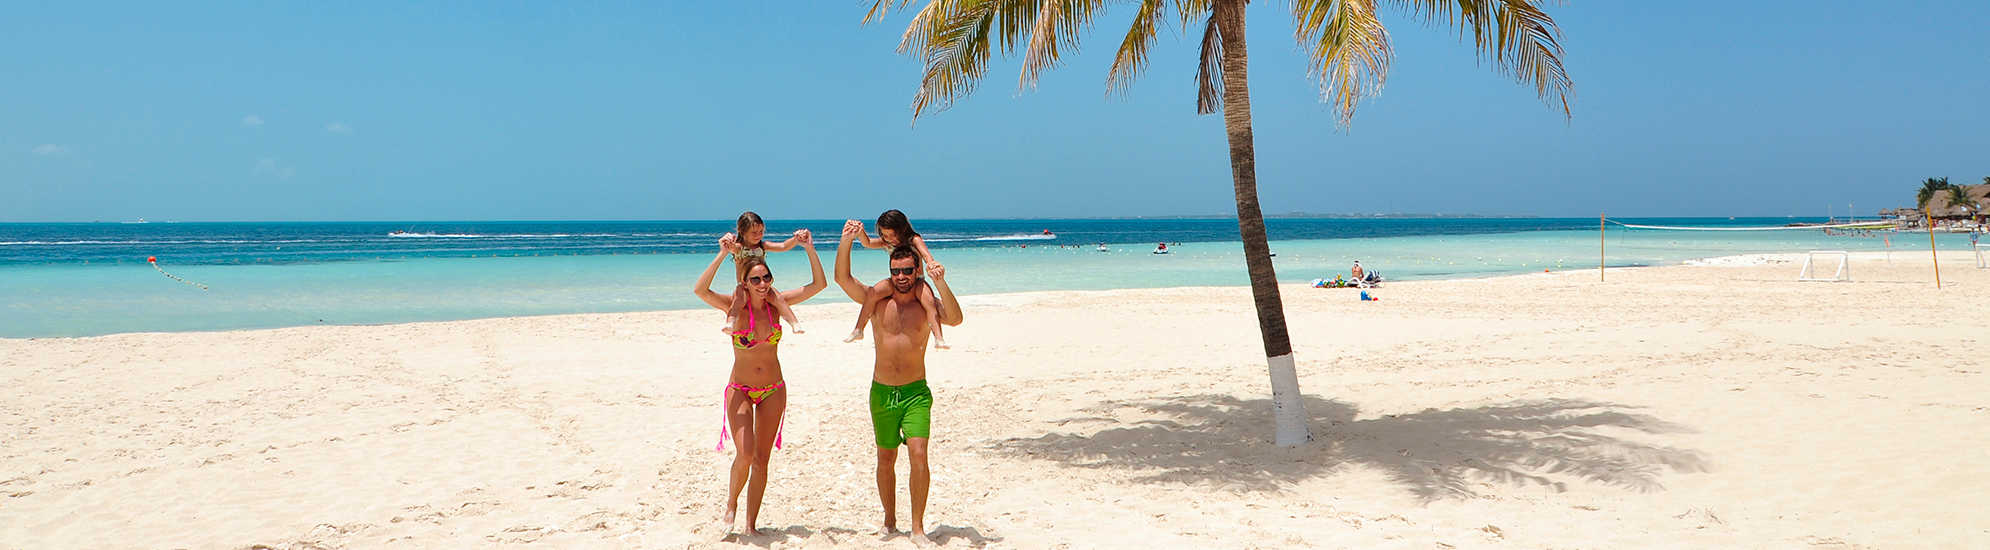 5 Best Hotels In Mexico For A Family Spring Break